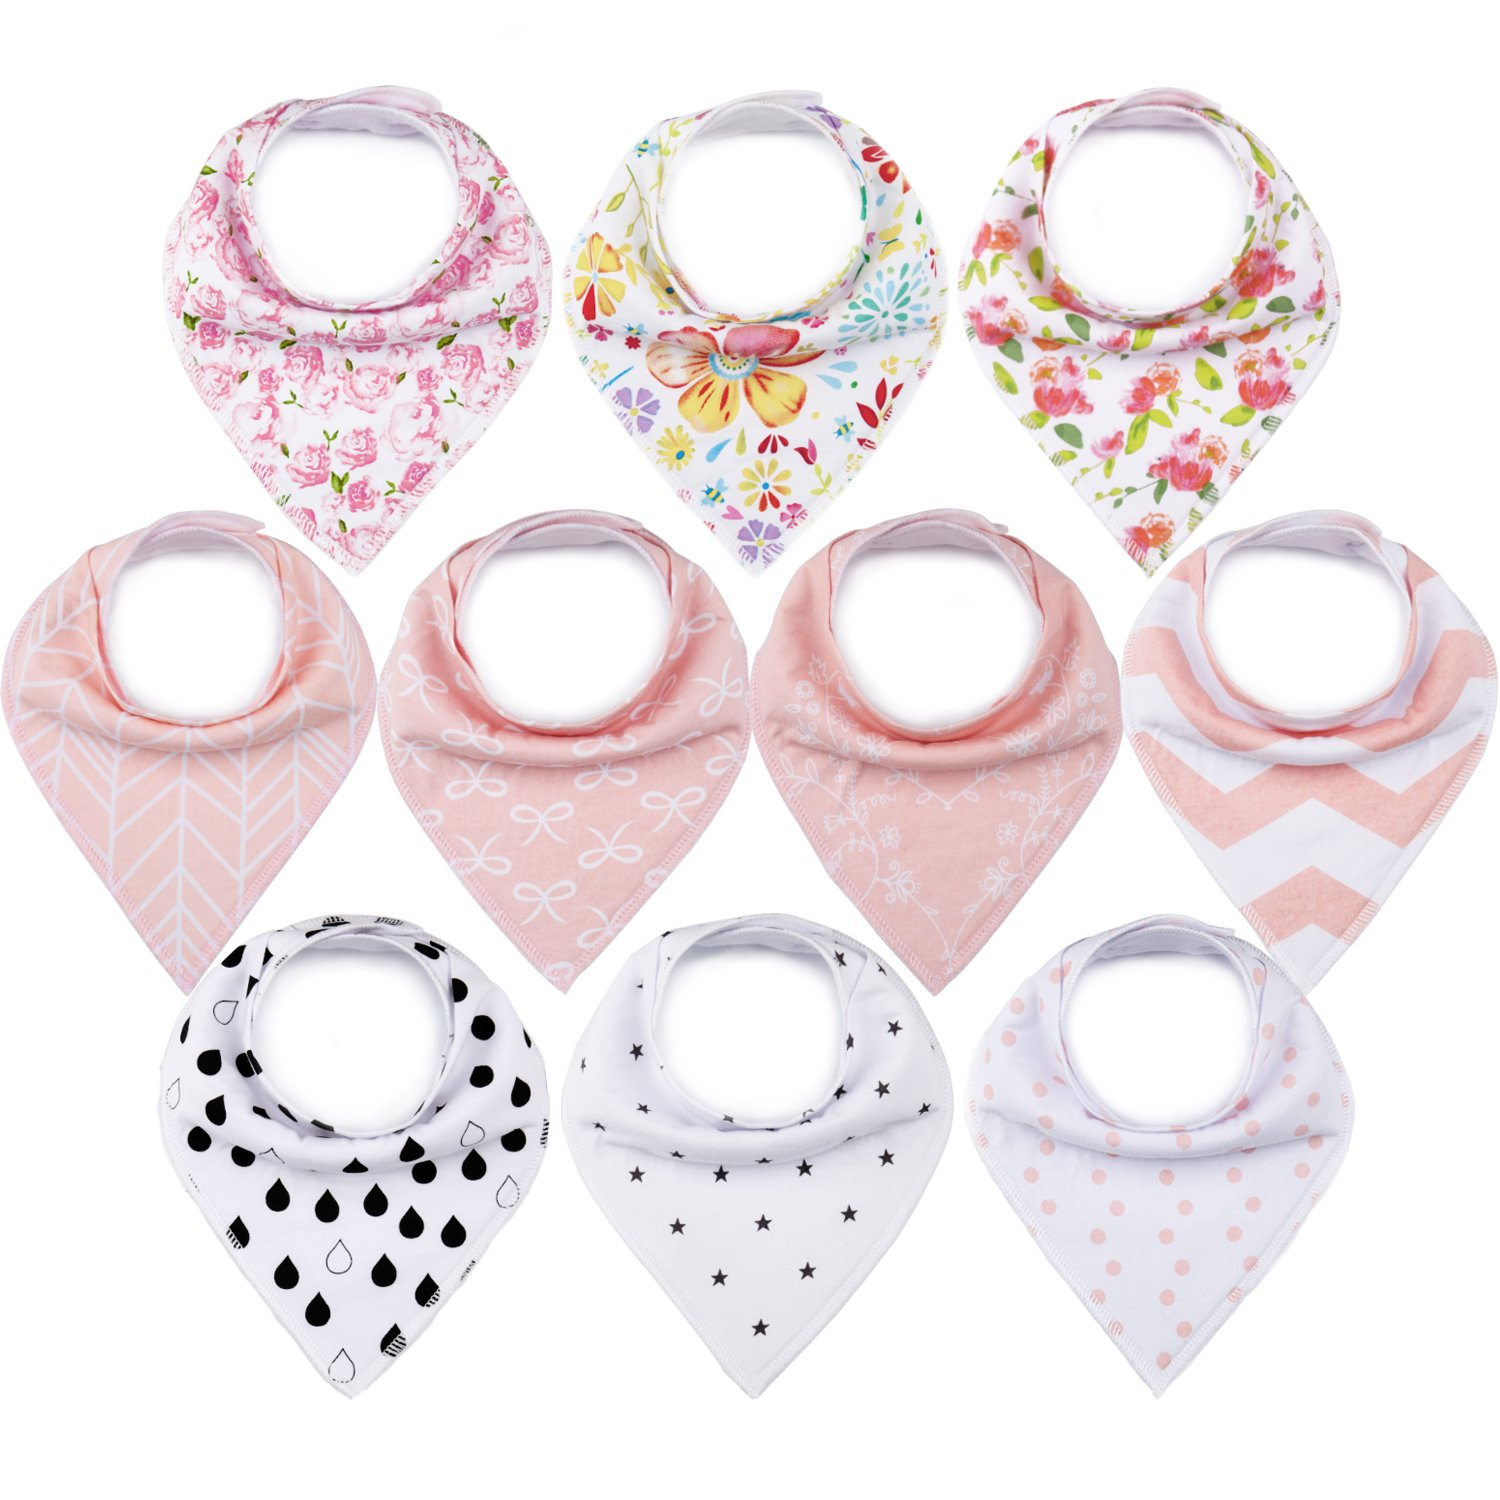 10-Pack Bandana Bibs Upsimples Baby Drool Bibs for Drooling and Teething, 100% Cotton Super Absorbent, 10 Stylish Design for Baby Girls Toddler, Baby Shower Gift Set Upsimples-US002